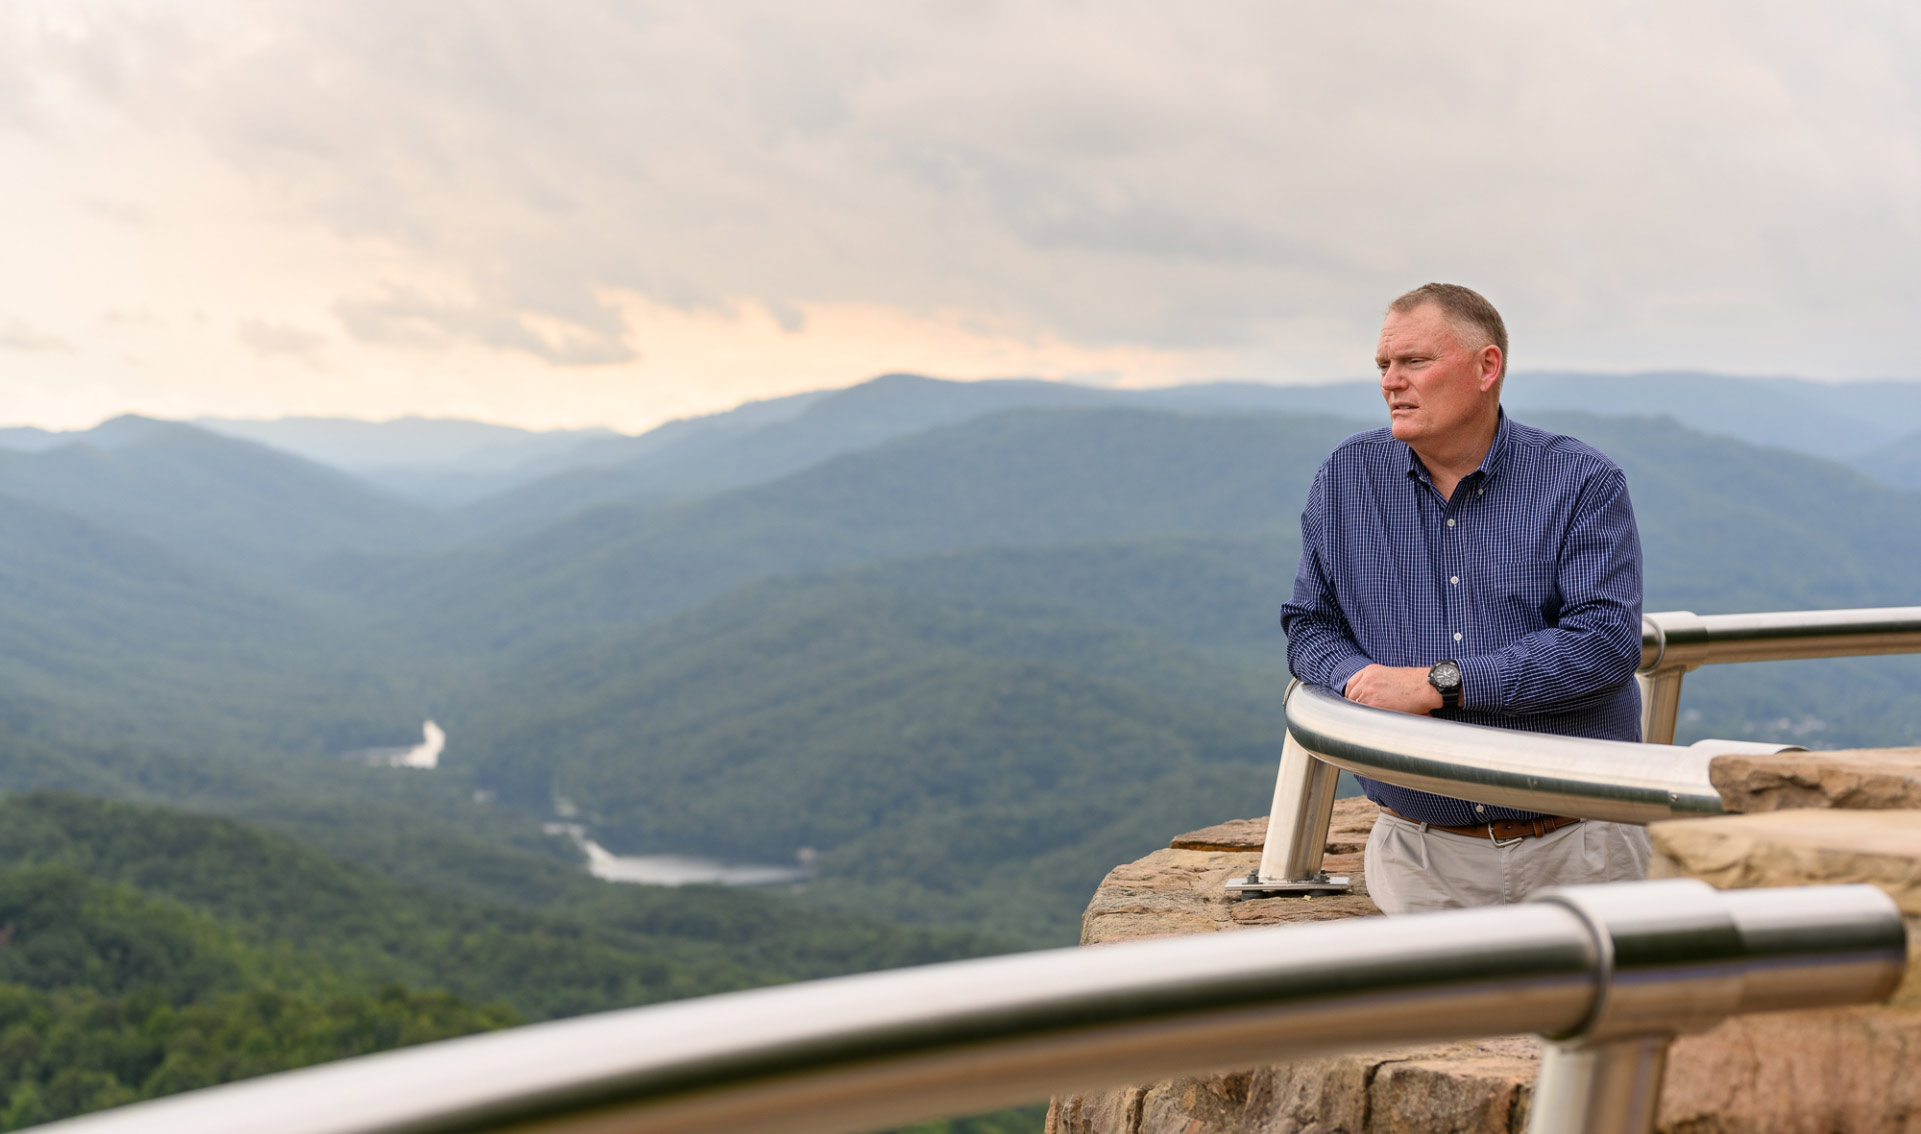 A landscape photo of Michael at an overlook, looking out across a view of the sky, mountains and trees.